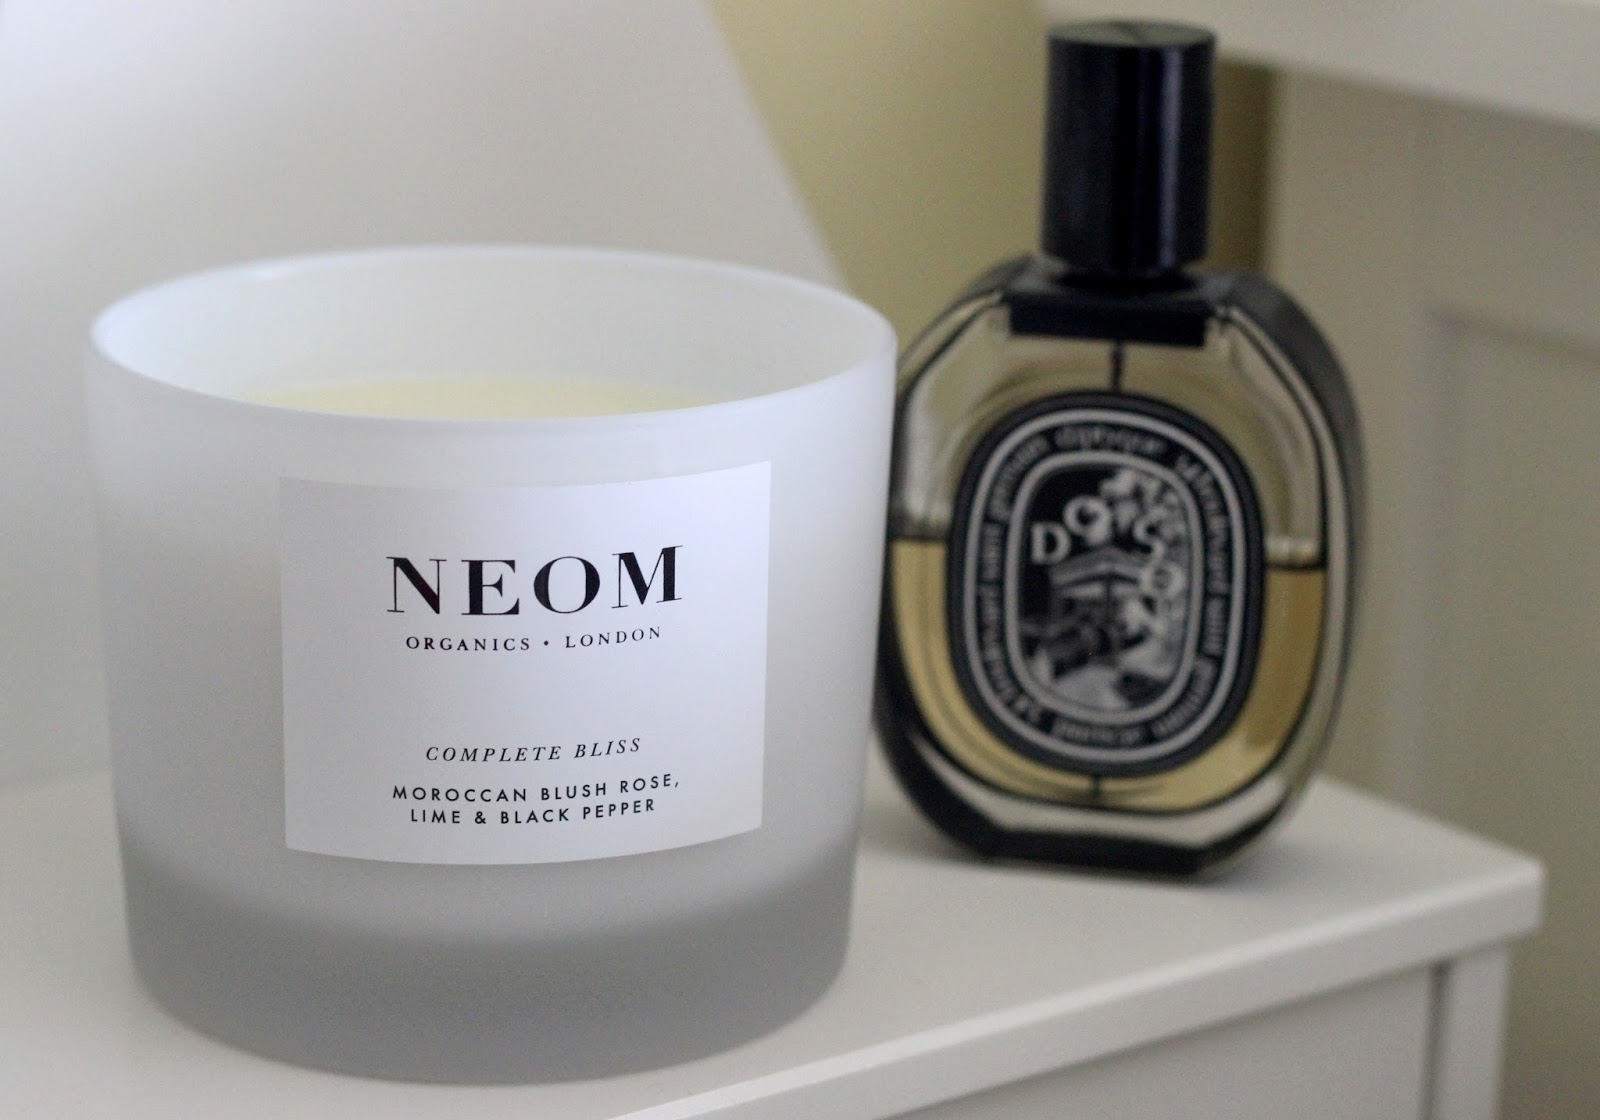 NEOM Moroccan Blush Rose, Lime & Black Pepper Candle review